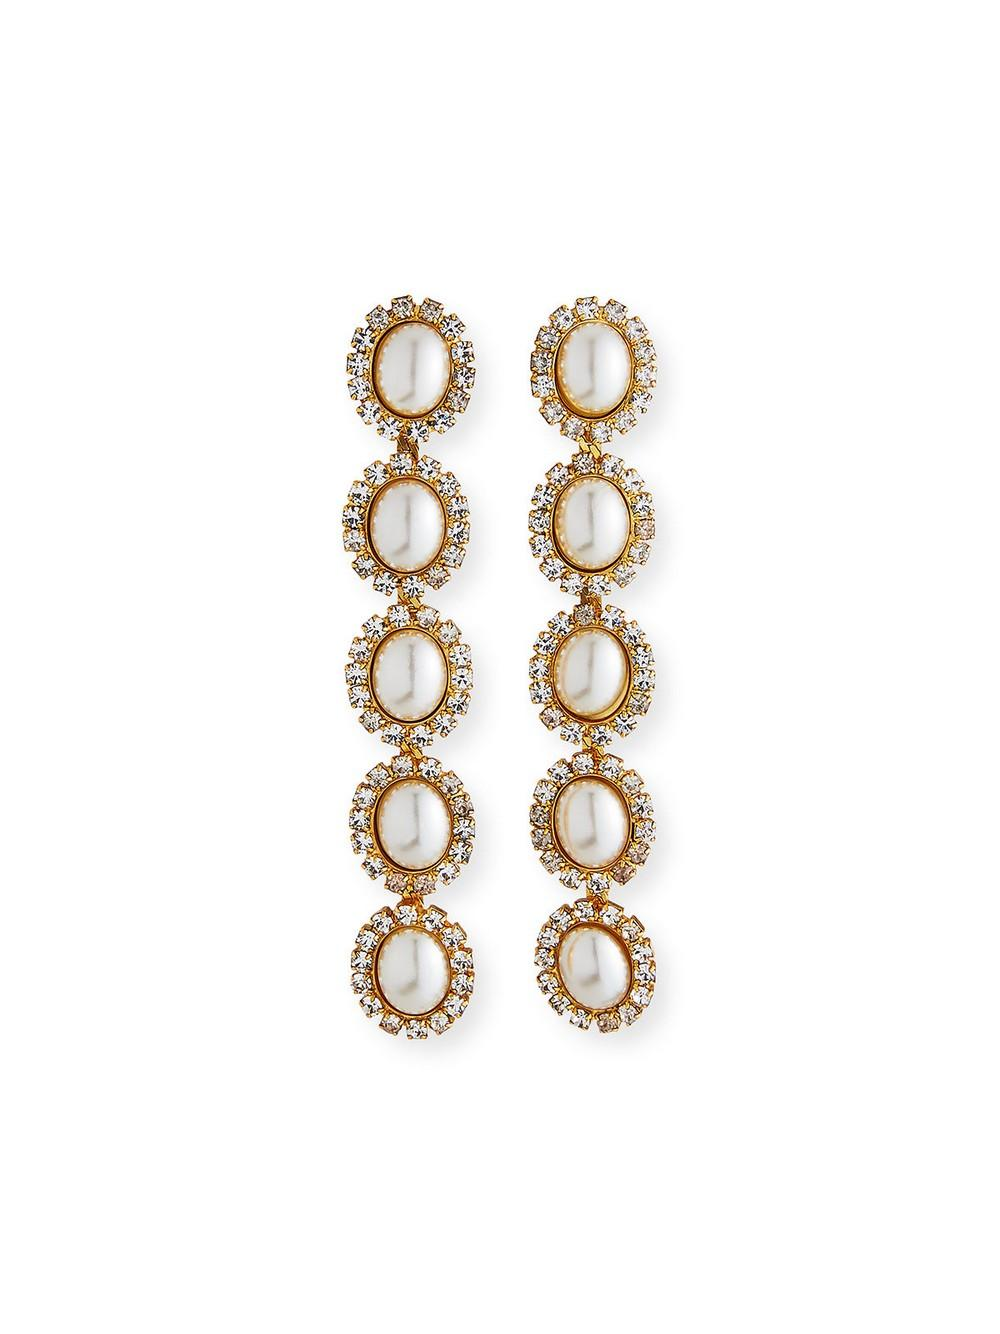 Von Earrings